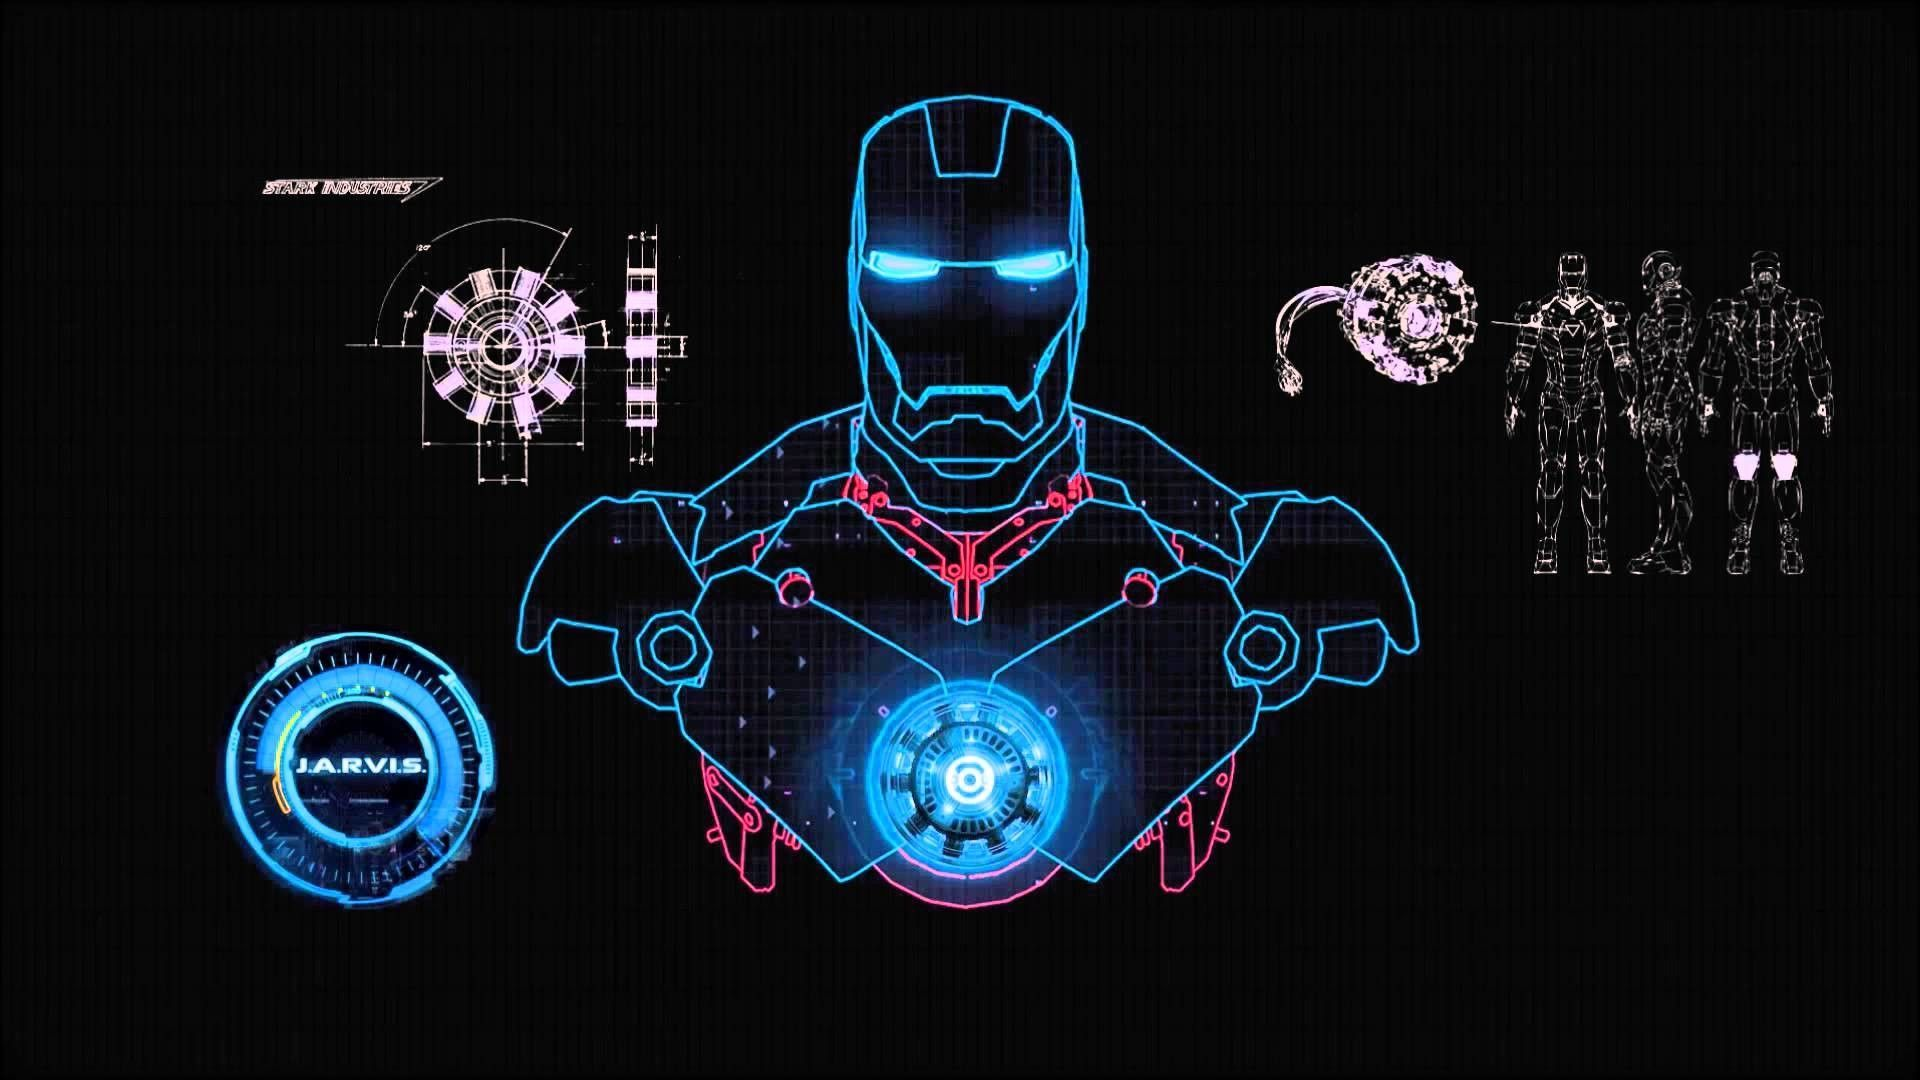 Iron Man 4k Wallpaper Luxury Iron Man Jarvis Desktop Wallpapers Top Free Iron Man Iron Man Wallpaper Man Wallpaper Jarvis Iron Man